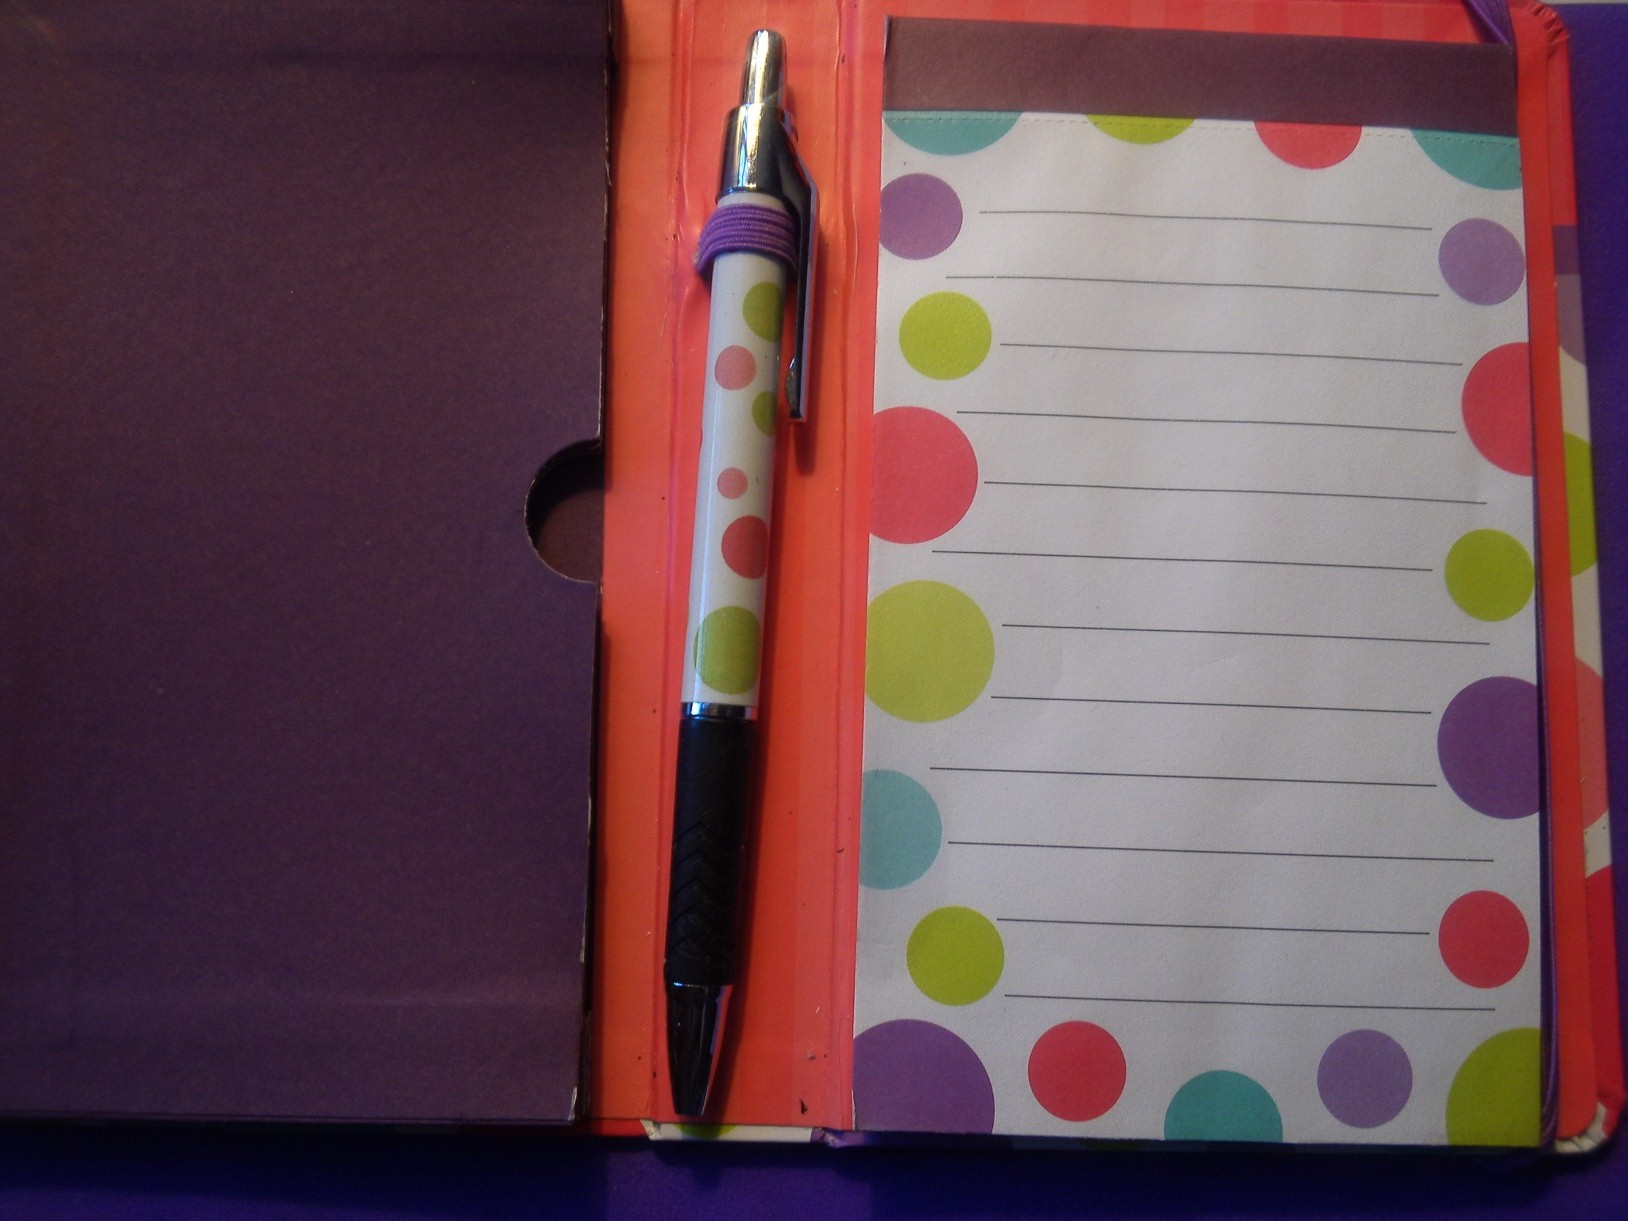 Time-Saving Tip Tuesday: Write it Down